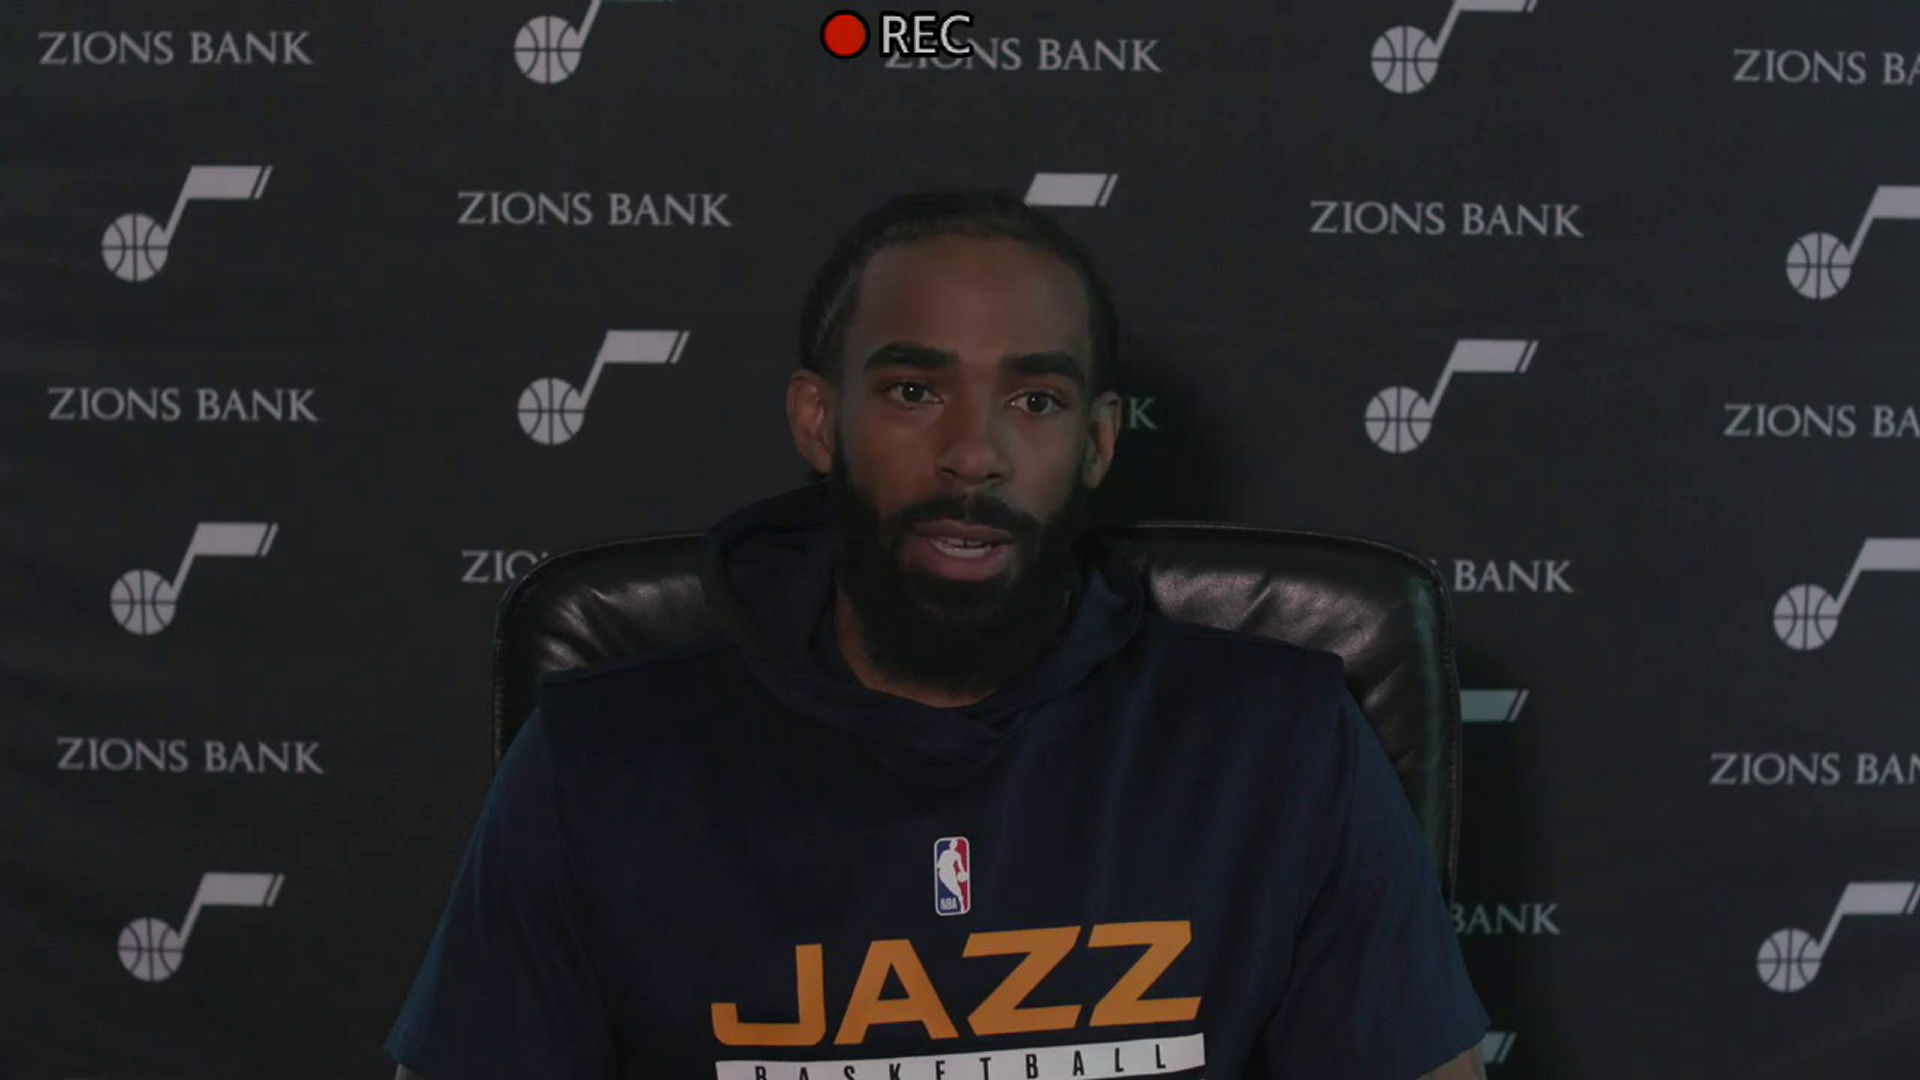 Shootaround 5.29—Mike Conley doesn't expect any special treatment in Memphis